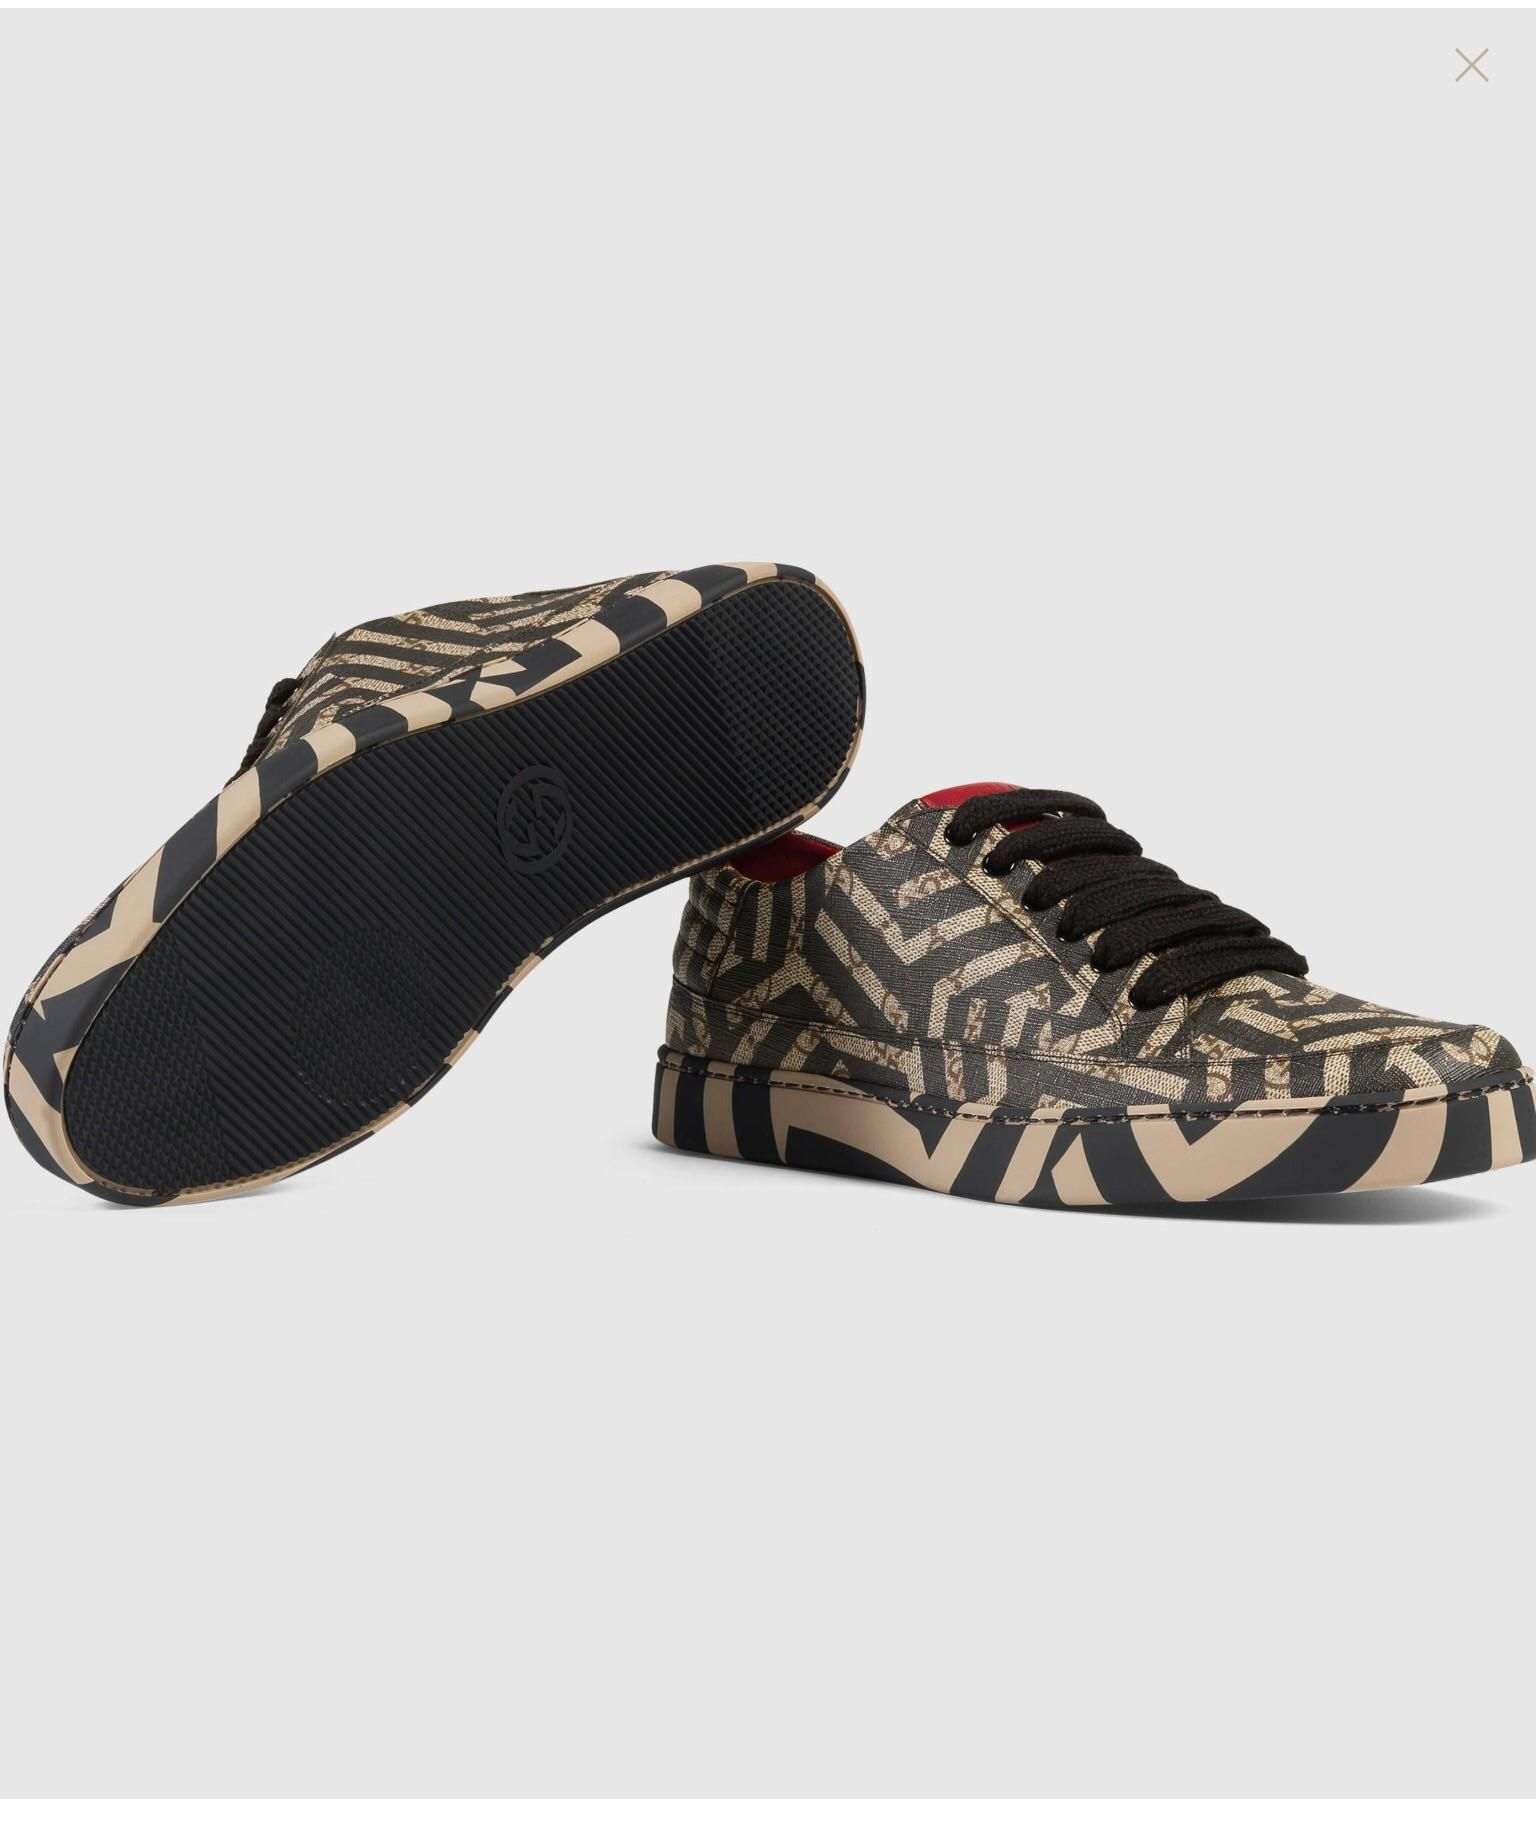 38cc7c2b4d5 Thoughts on these Gucci caleido sneakers